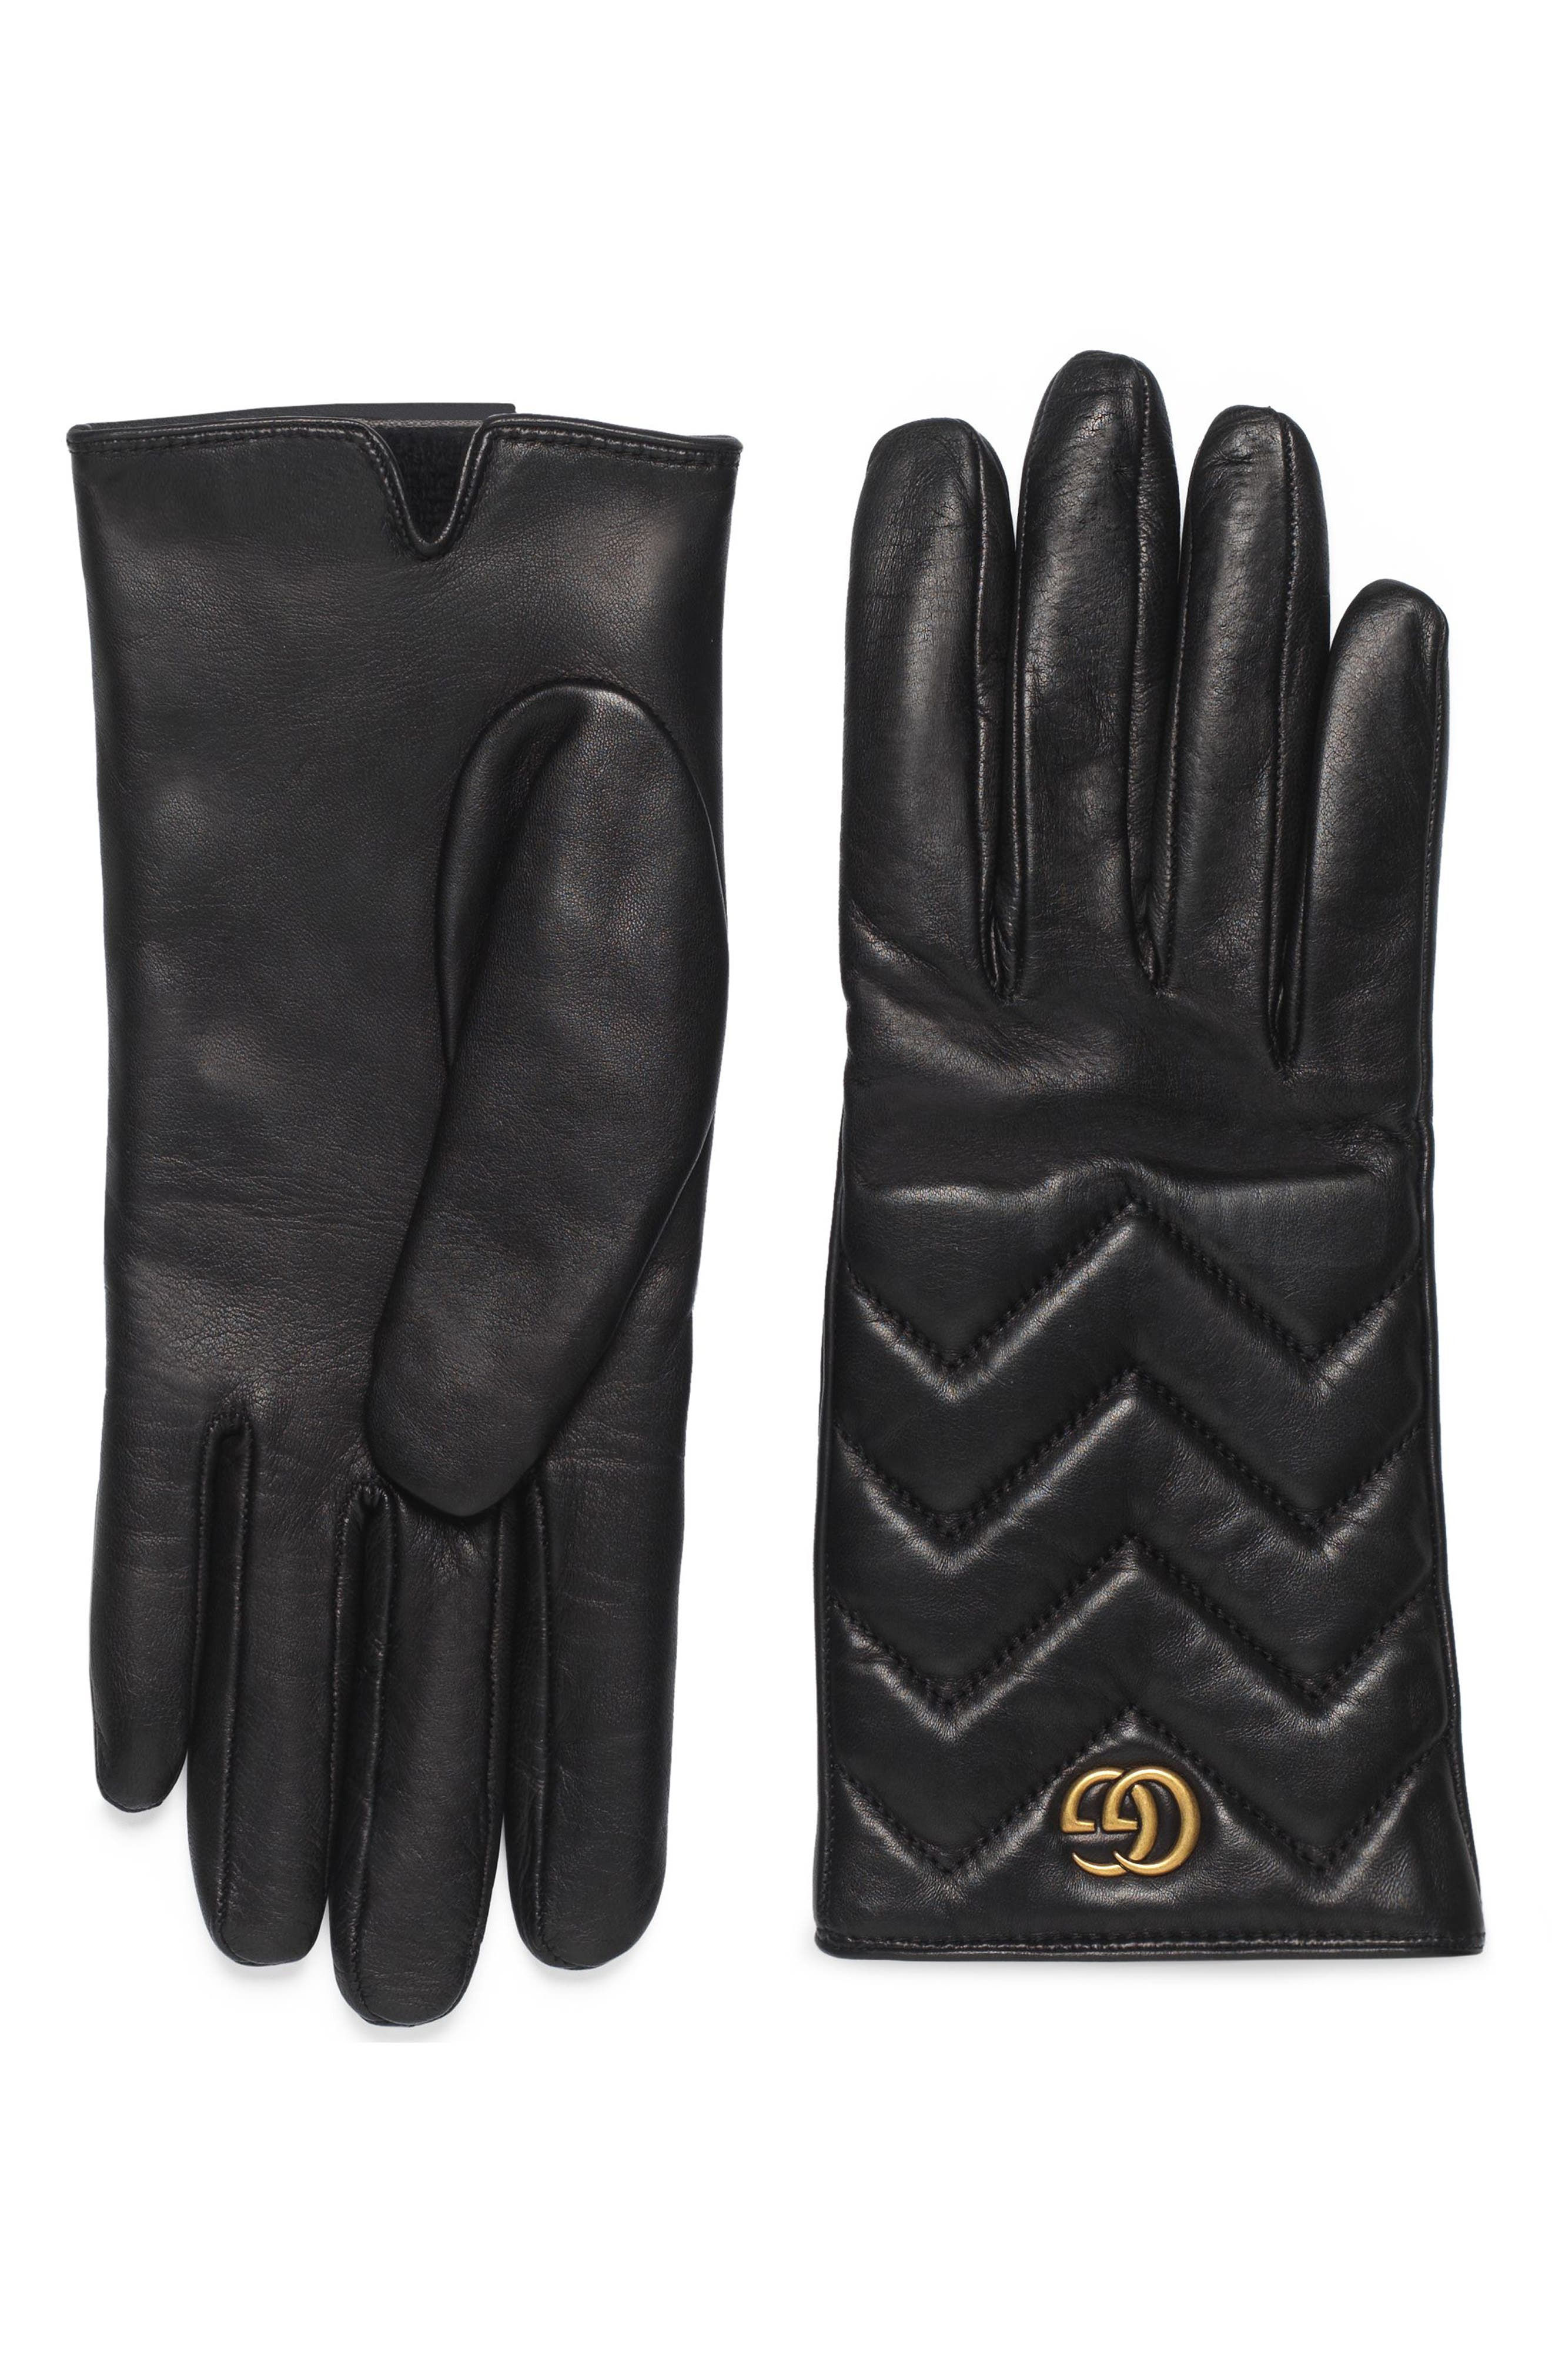 GG Marmont Cashmere Lined Leather Gloves,                             Main thumbnail 1, color,                             NERO